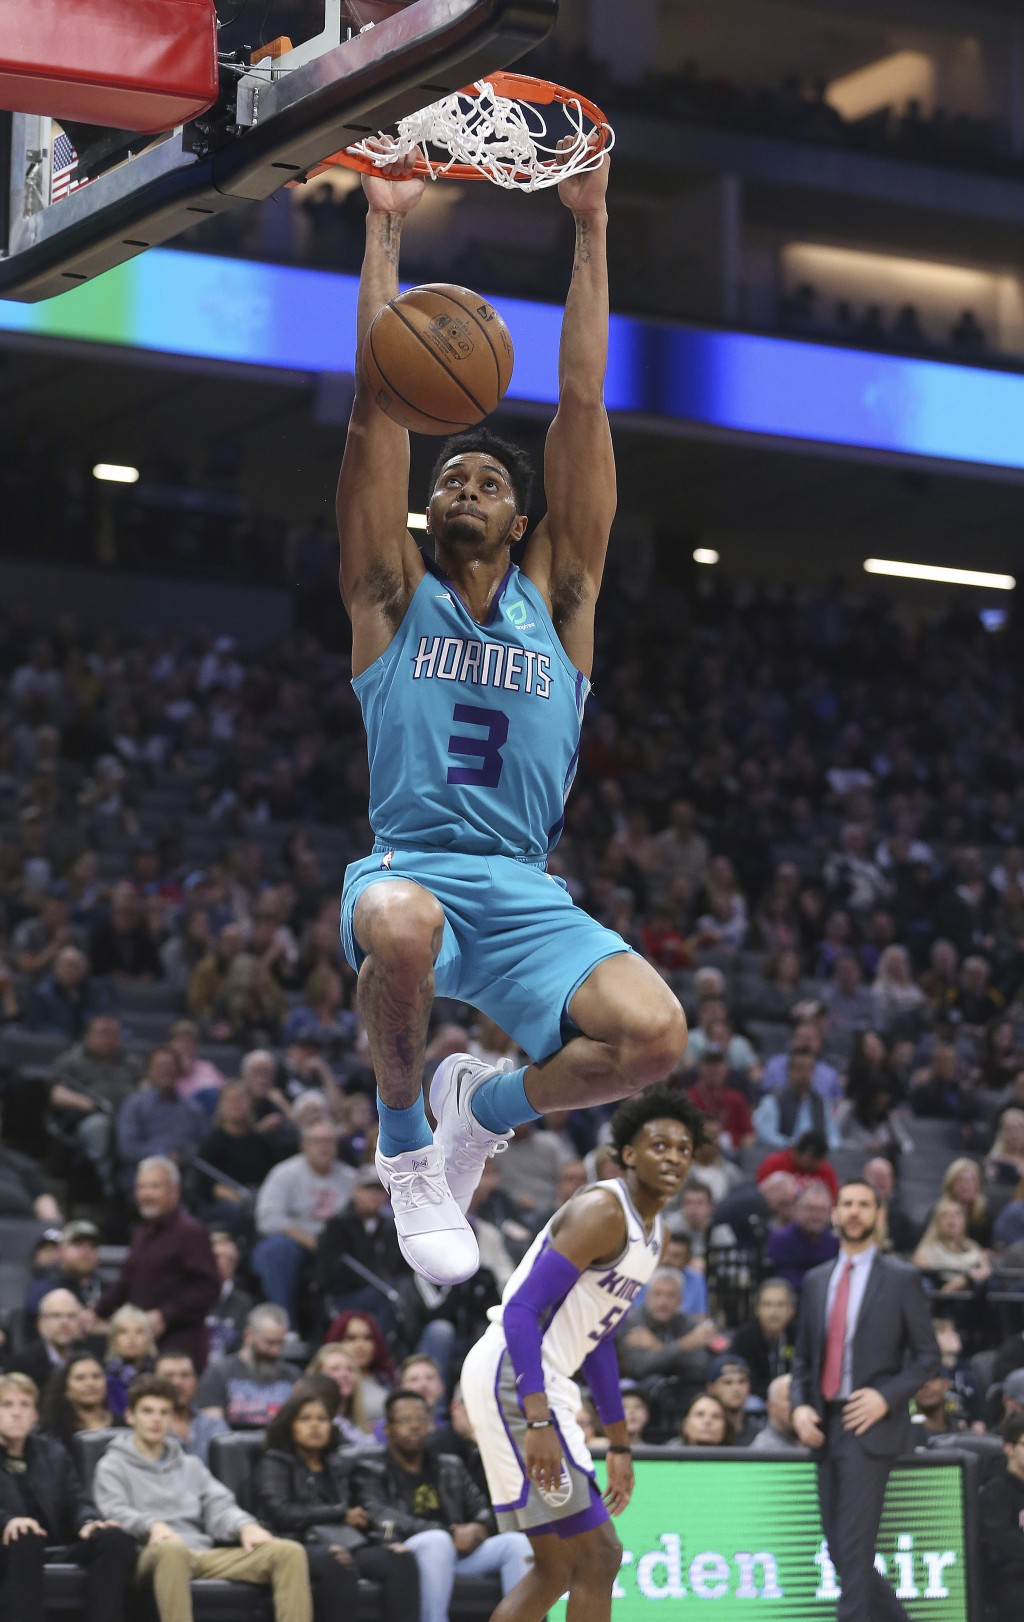 Charlotte Hornets guard Jeremy Lamb hangs from the rim after a dunk as Sacramento Kings guard De'Aaron Fox, rear, watches during the first quarter of